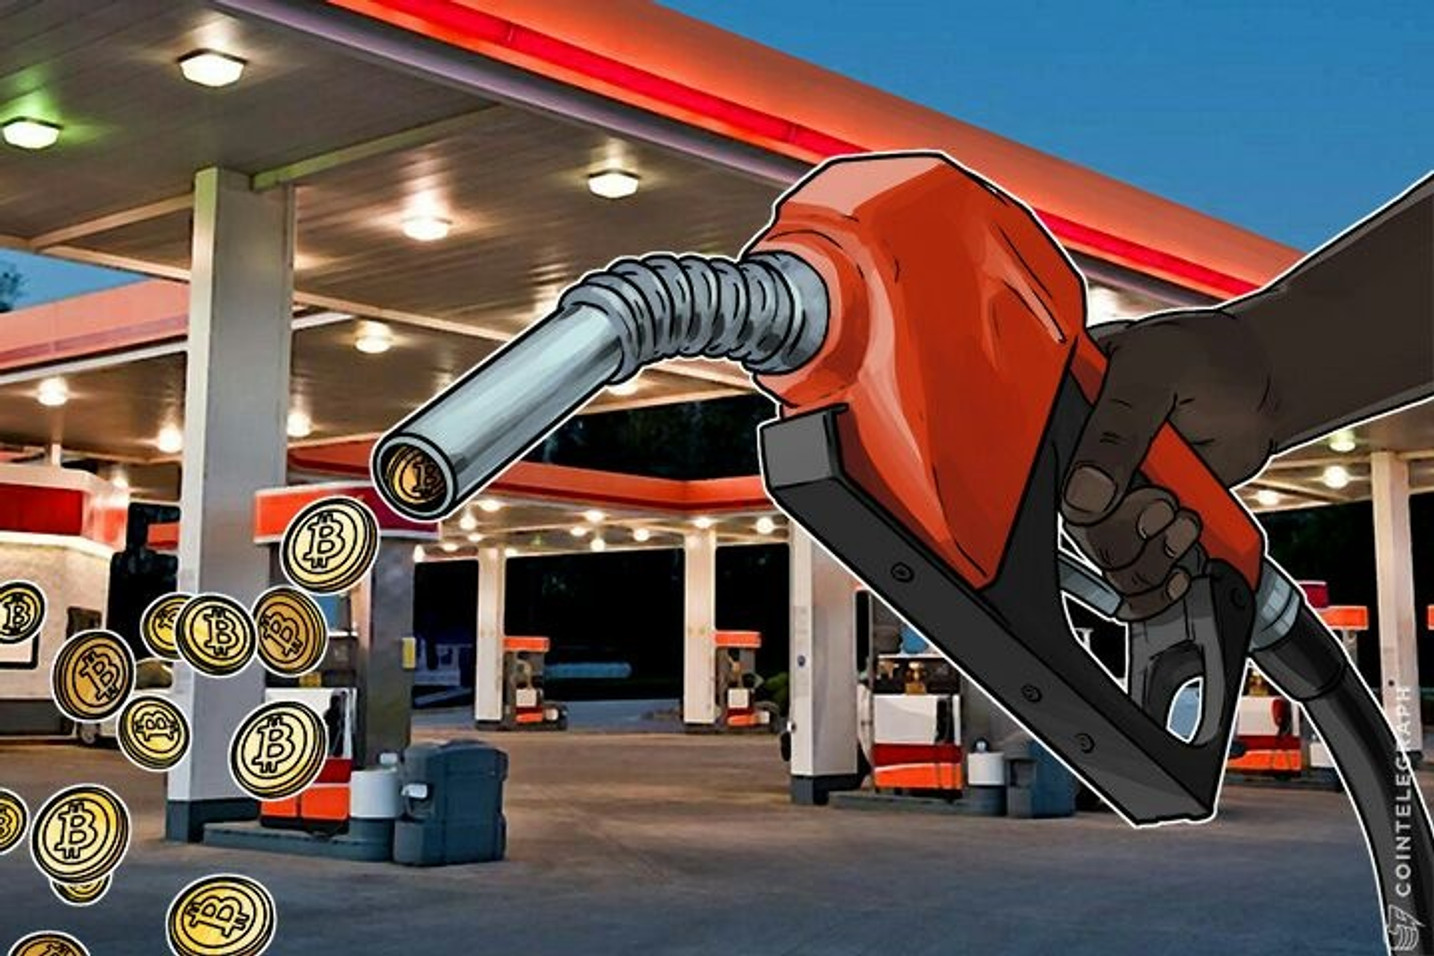 Nigerian Currency Falls After Petrol Price Hike, Bitcoin Offers Solution